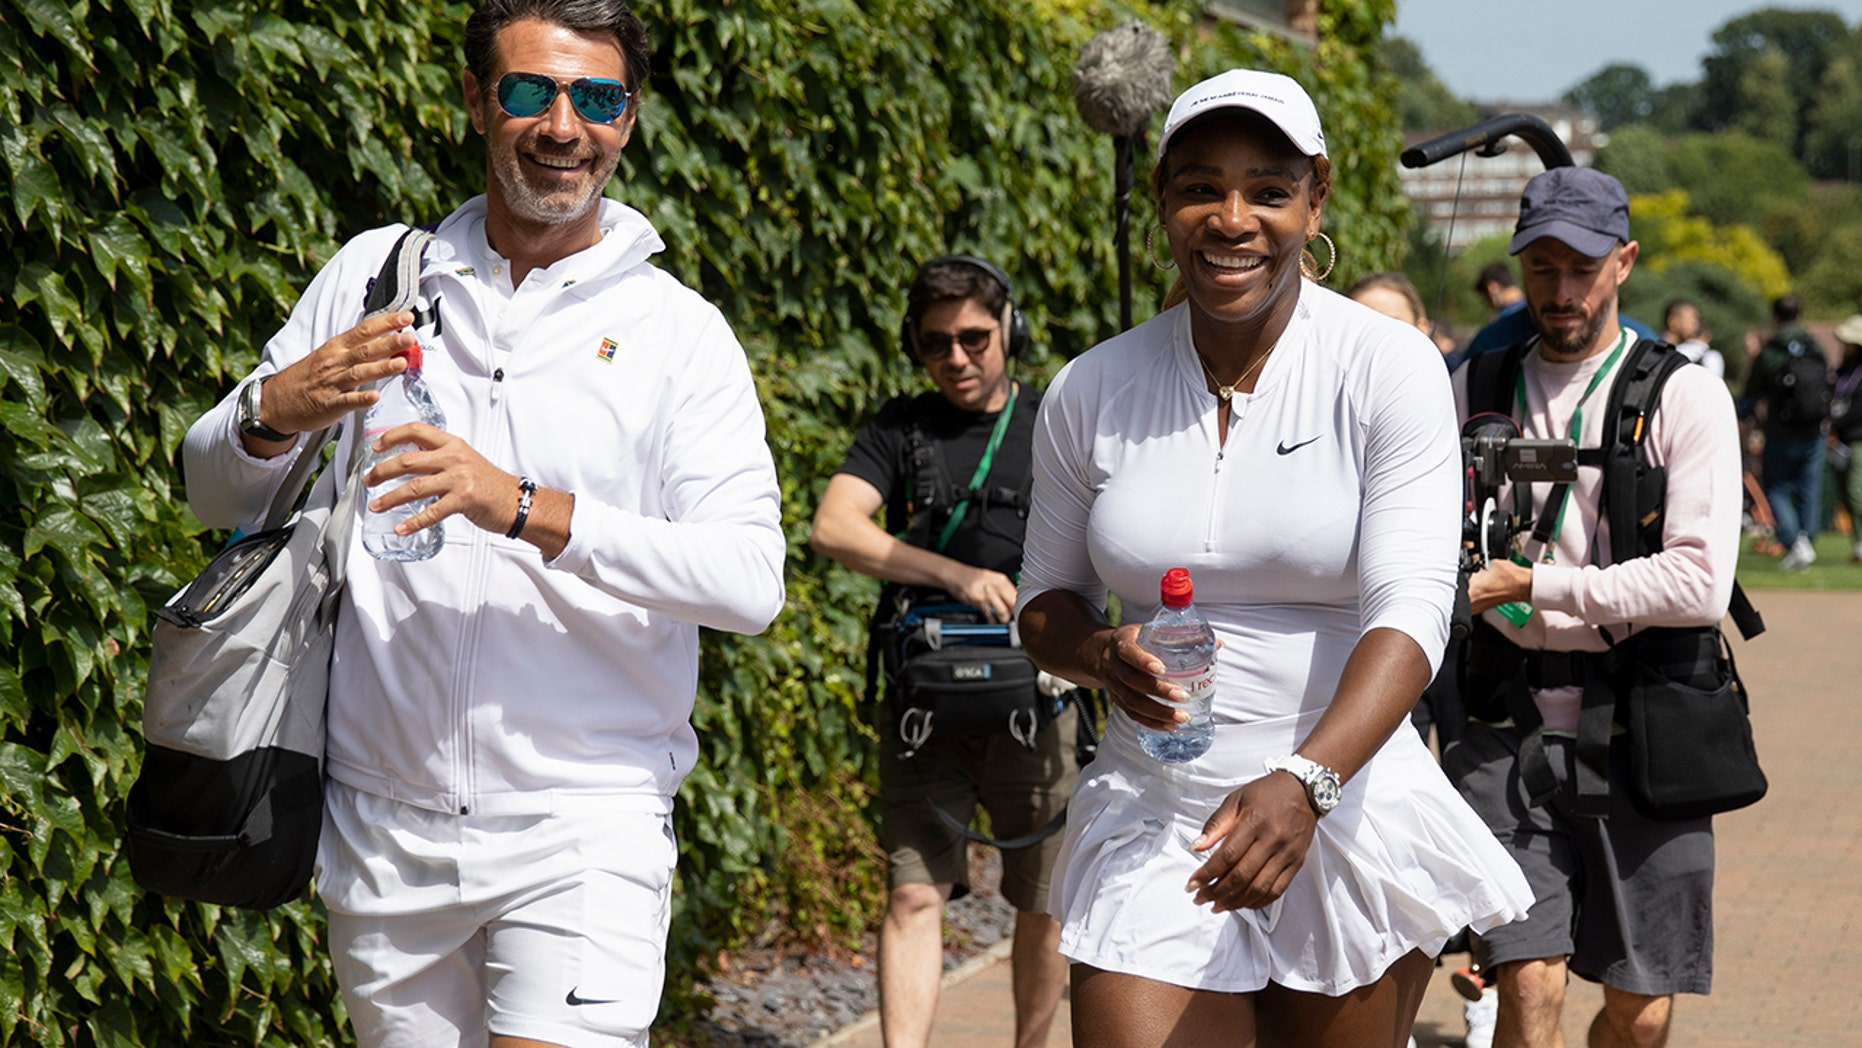 Serena Williams of USA and her coach Patrick Mouratoglou walk on after a training session at the All England Lawn Tennis Championships in Wimbledon, London, on Friday, June 28, 2019. The Wimbledon Tennis Championships 2019 will be held in London from July 1 to July 14. (Peter Klaunzer/Keystone via AP)